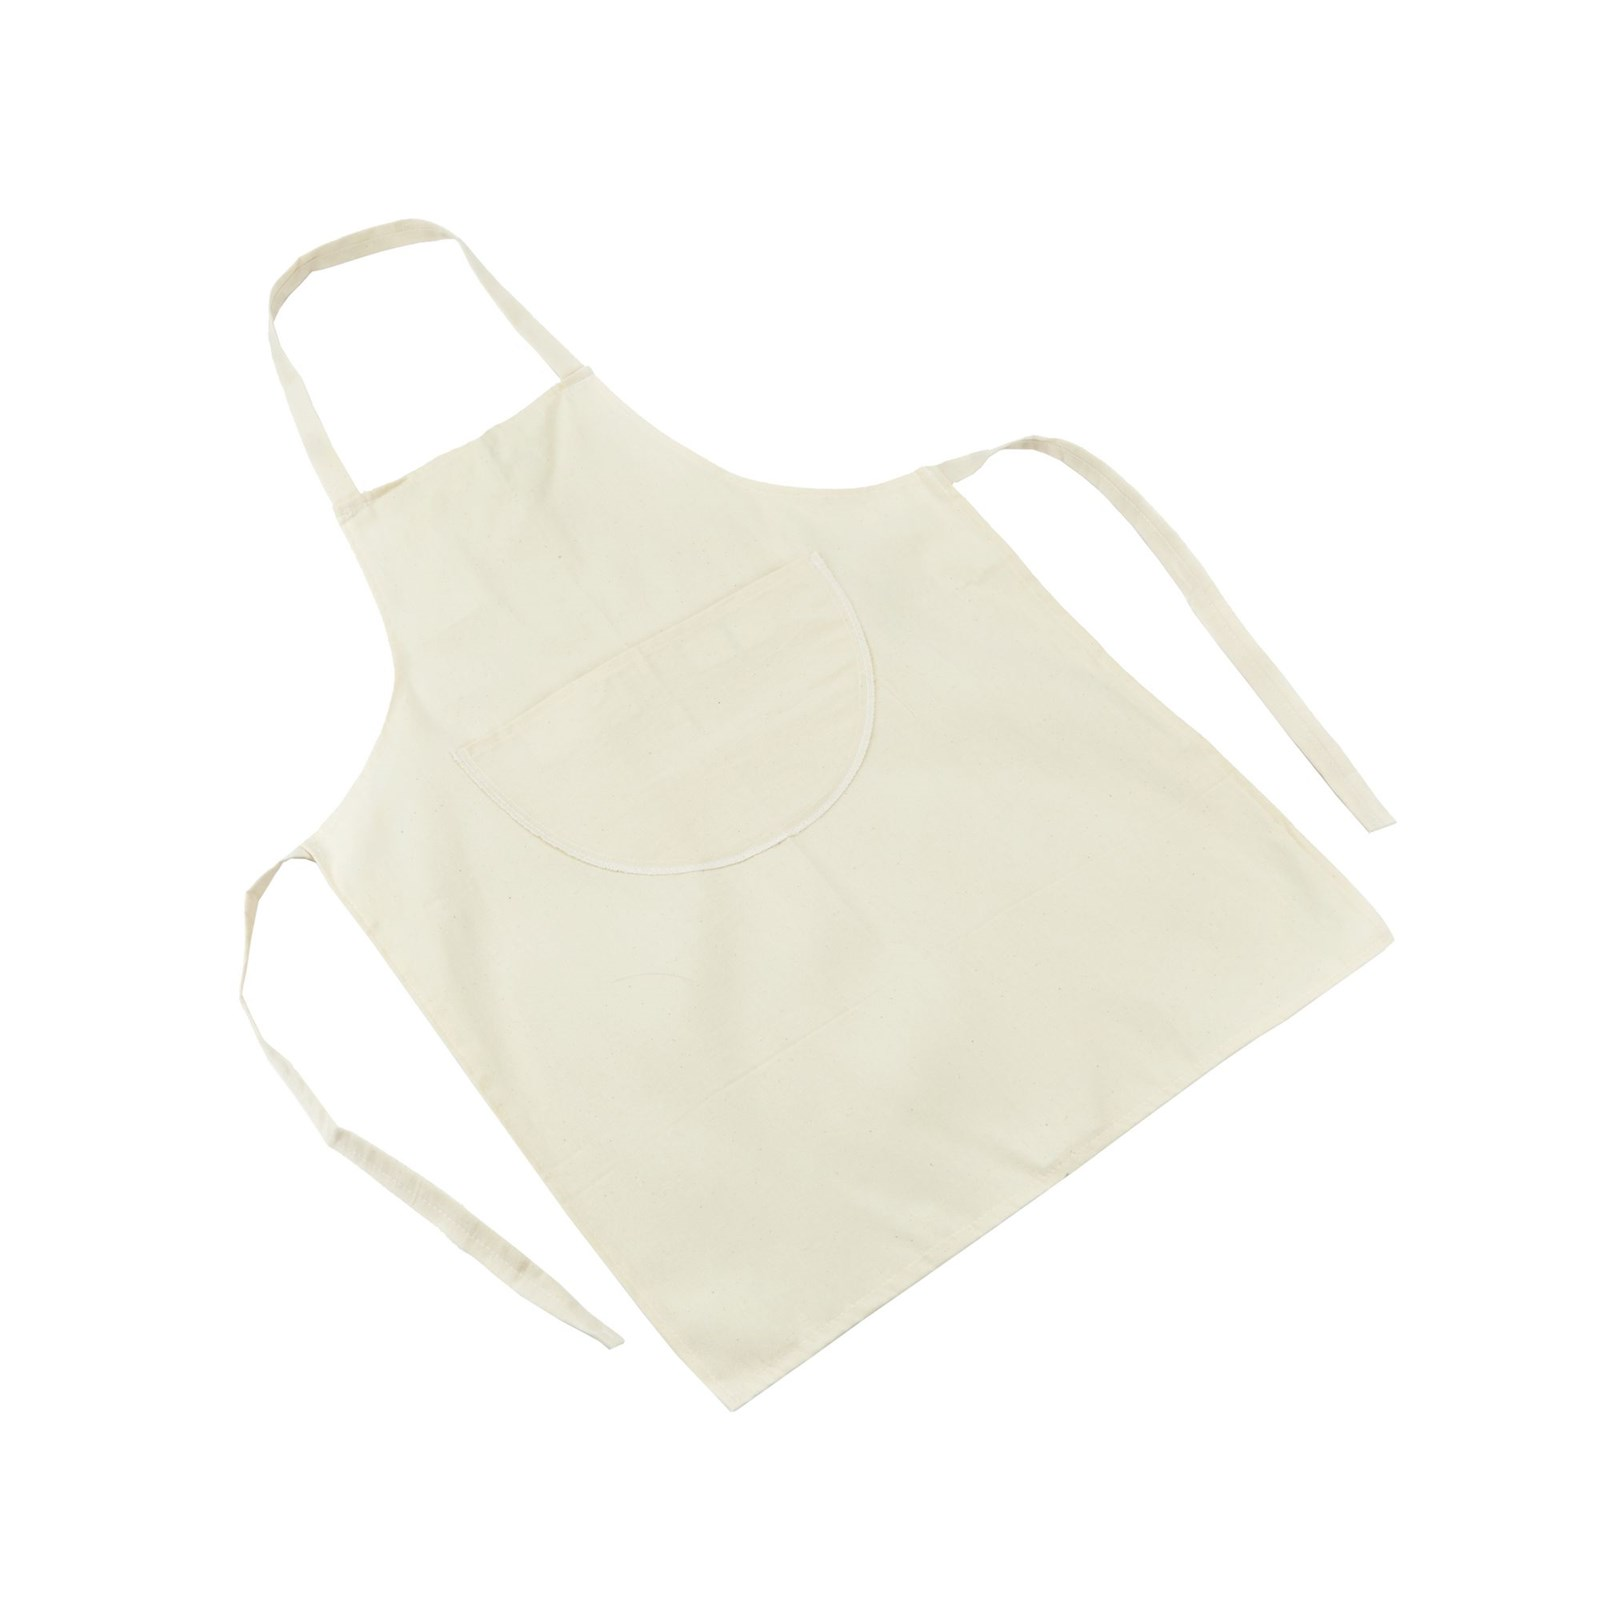 Woodwork Apron - Youth 58 x 75cm